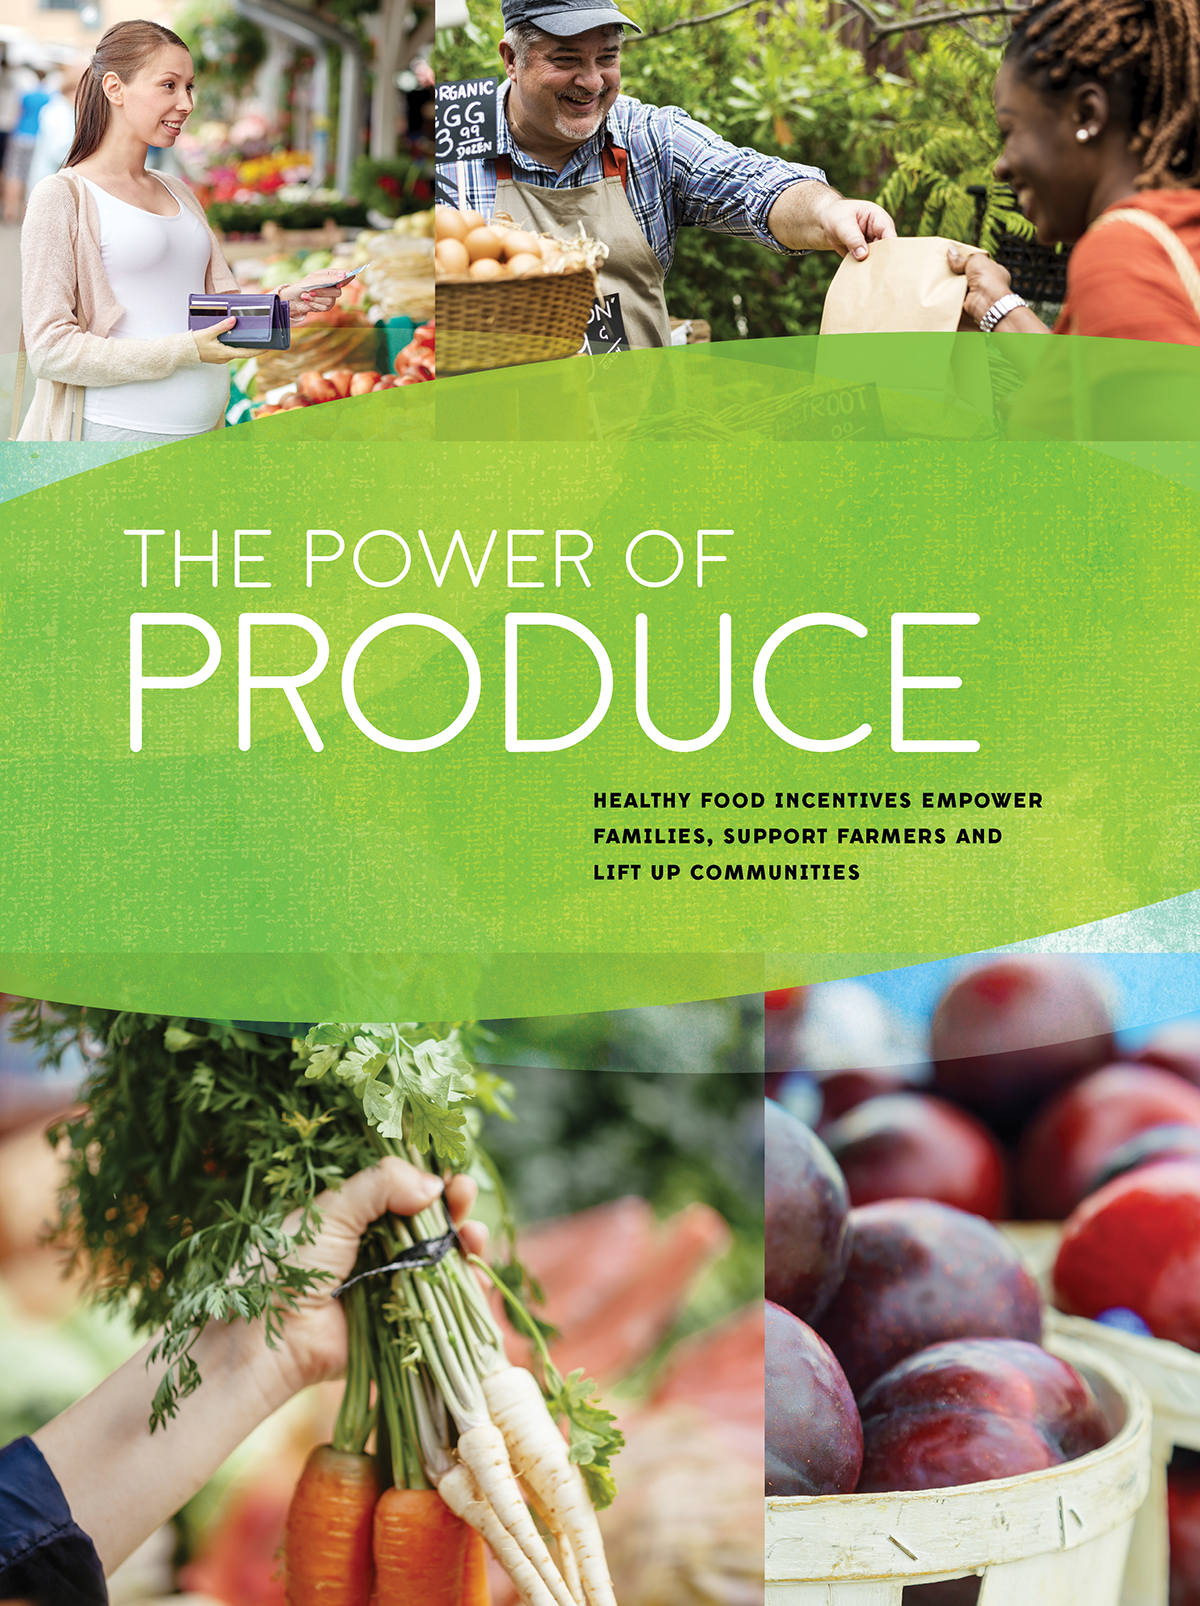 New Report – The Power of Produce: Healthy Food Incentives Empower Families, Support Farmers and Lift Up Communities